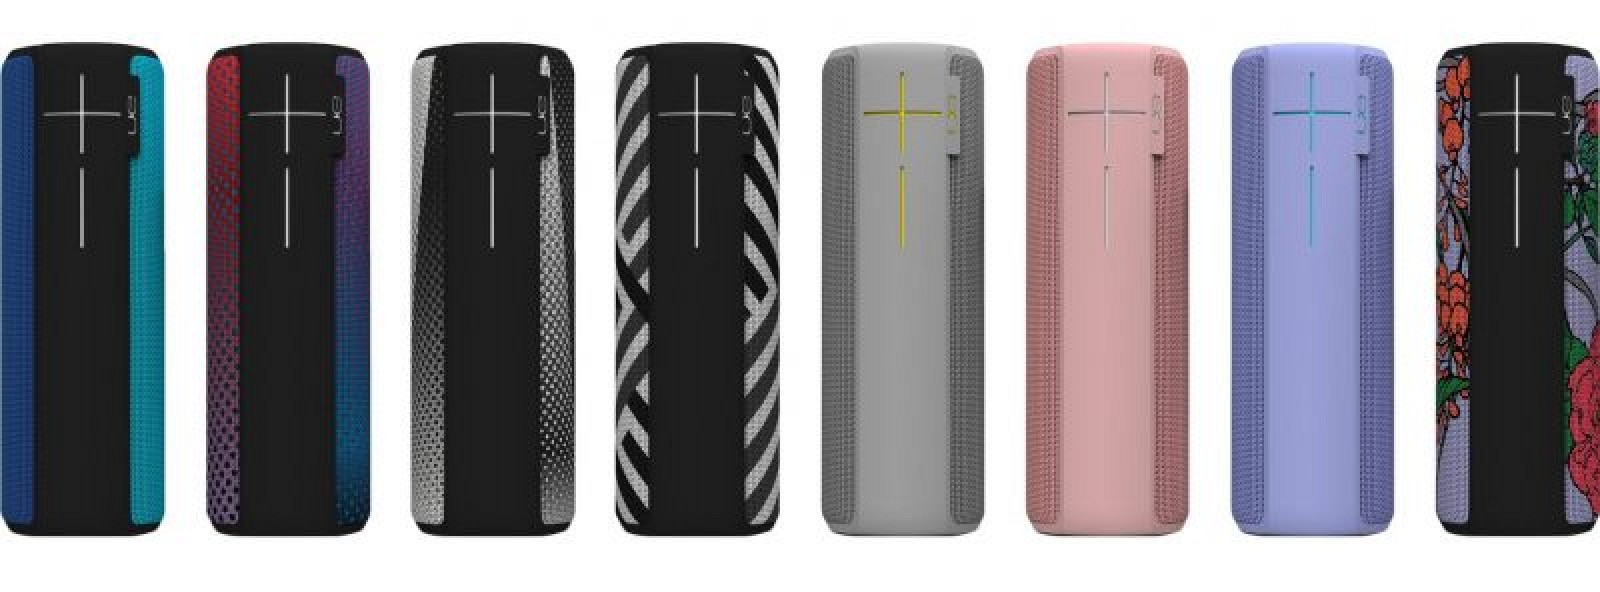 ultimate ears announces ue boom 2 and megaboom speakers in limited edition colors macrumors. Black Bedroom Furniture Sets. Home Design Ideas